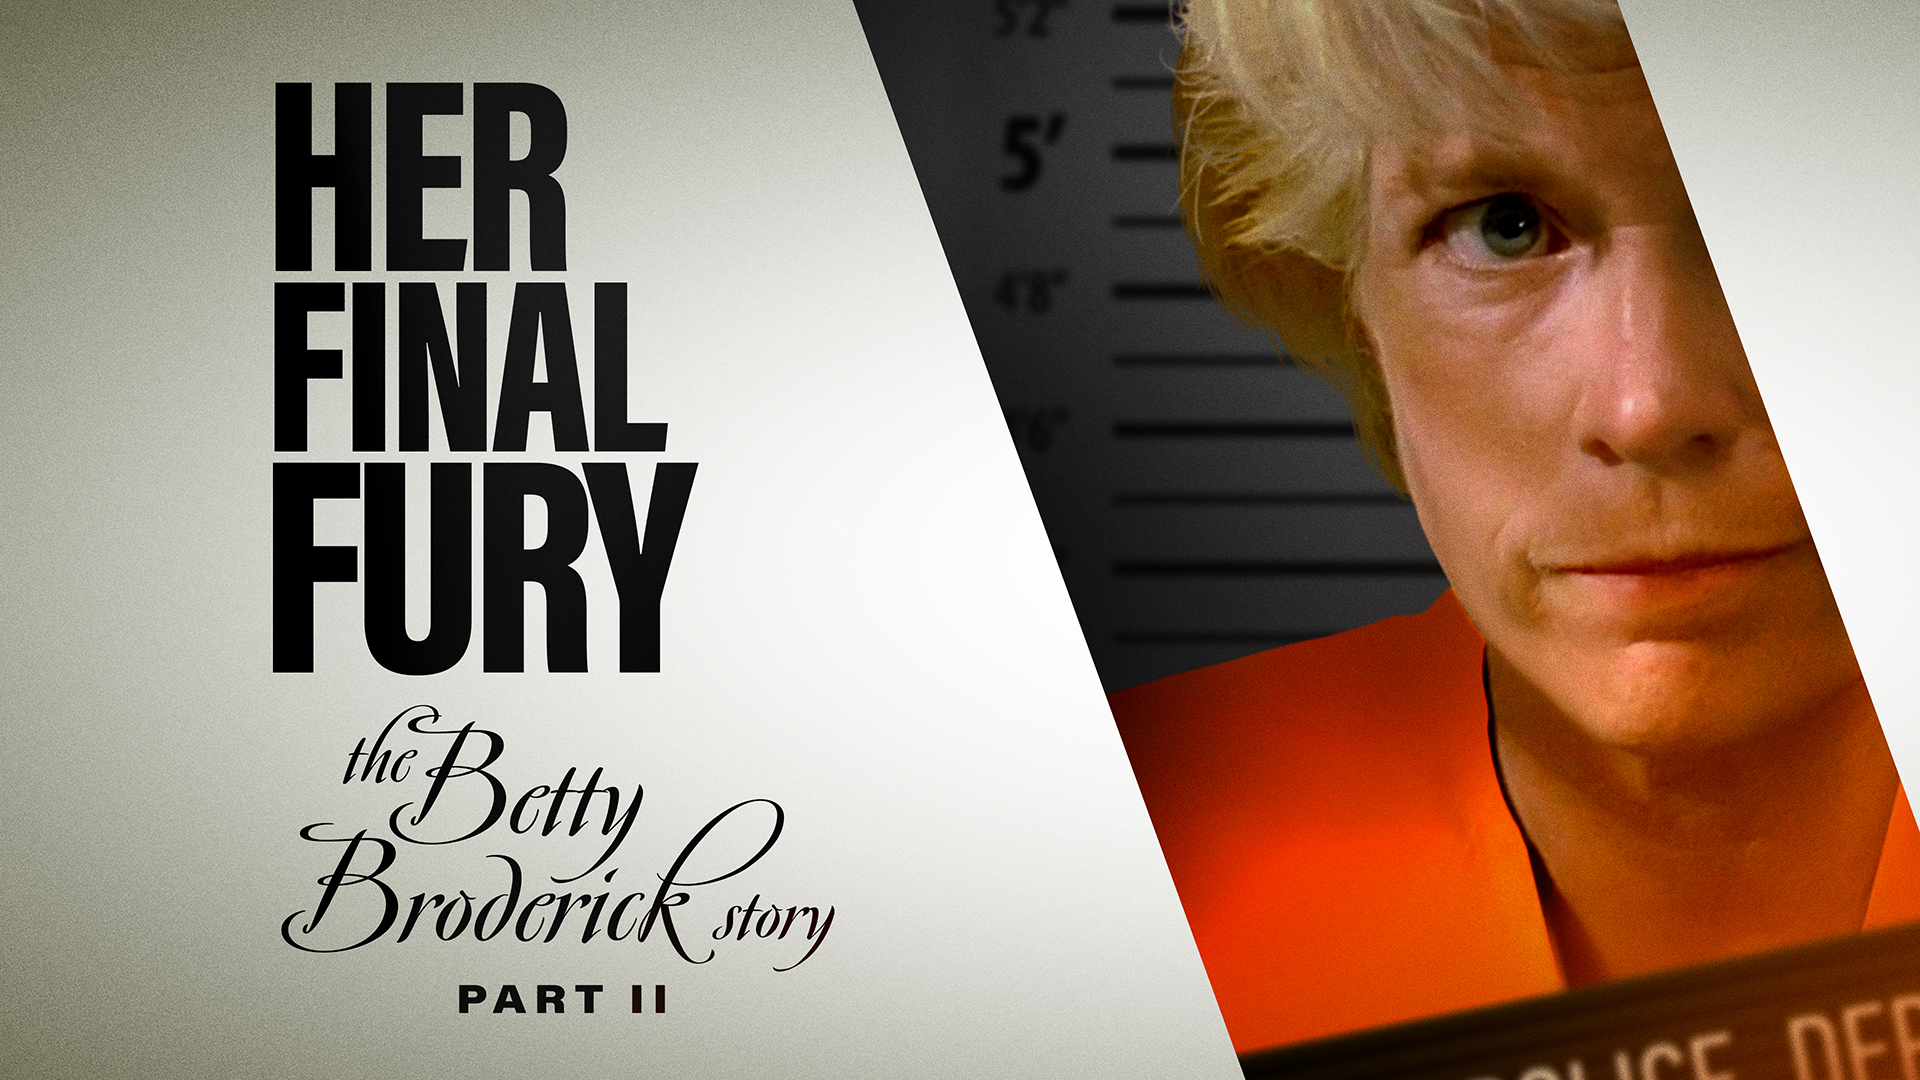 Her Final Fury: The Betty Broderick Story Part II